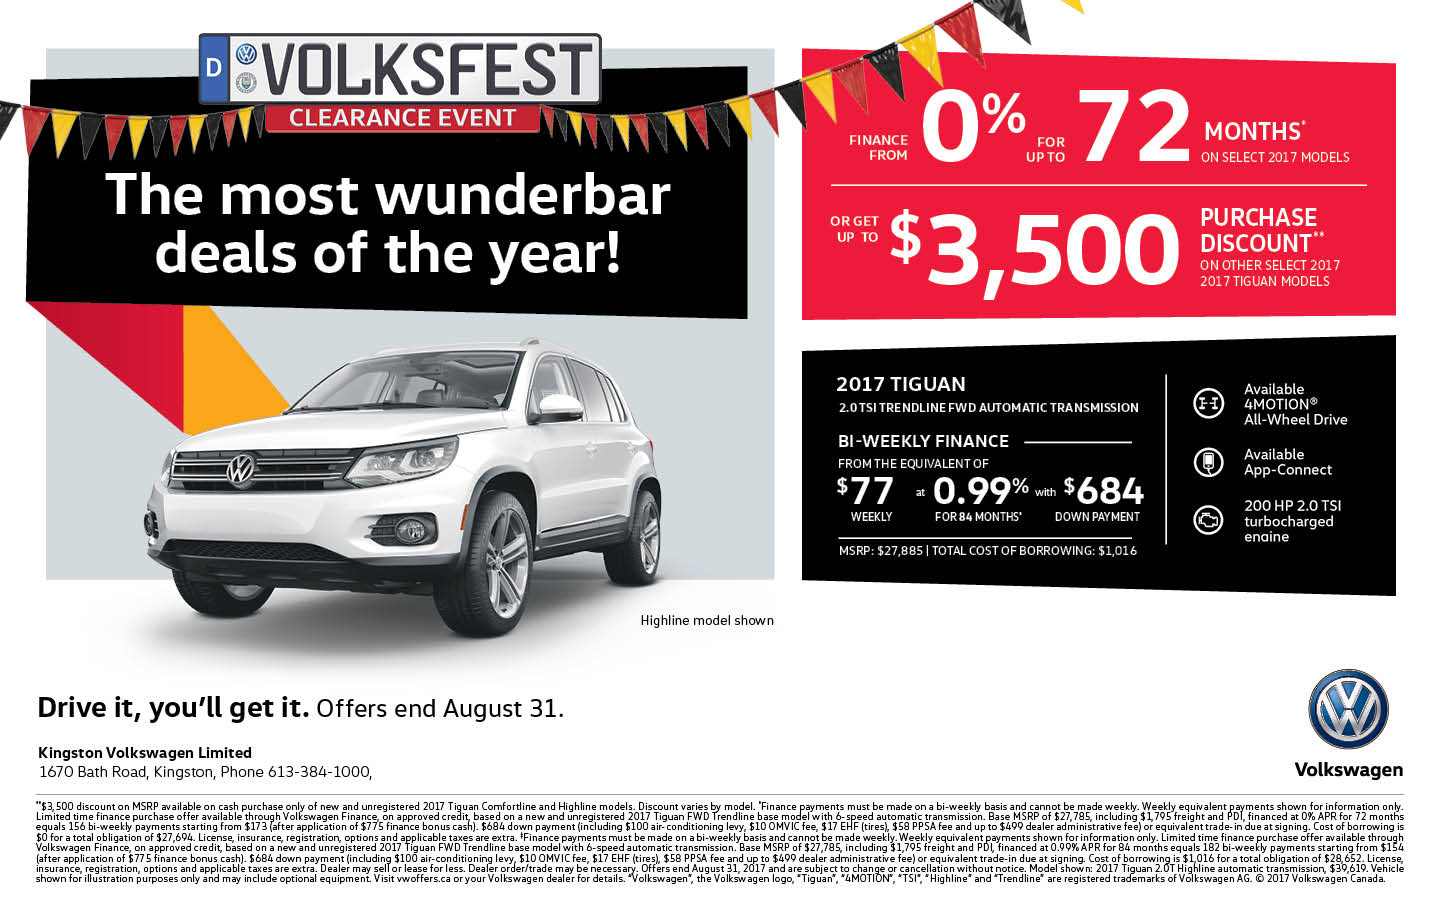 2017 Tiguan | Volksfest Clearance Event